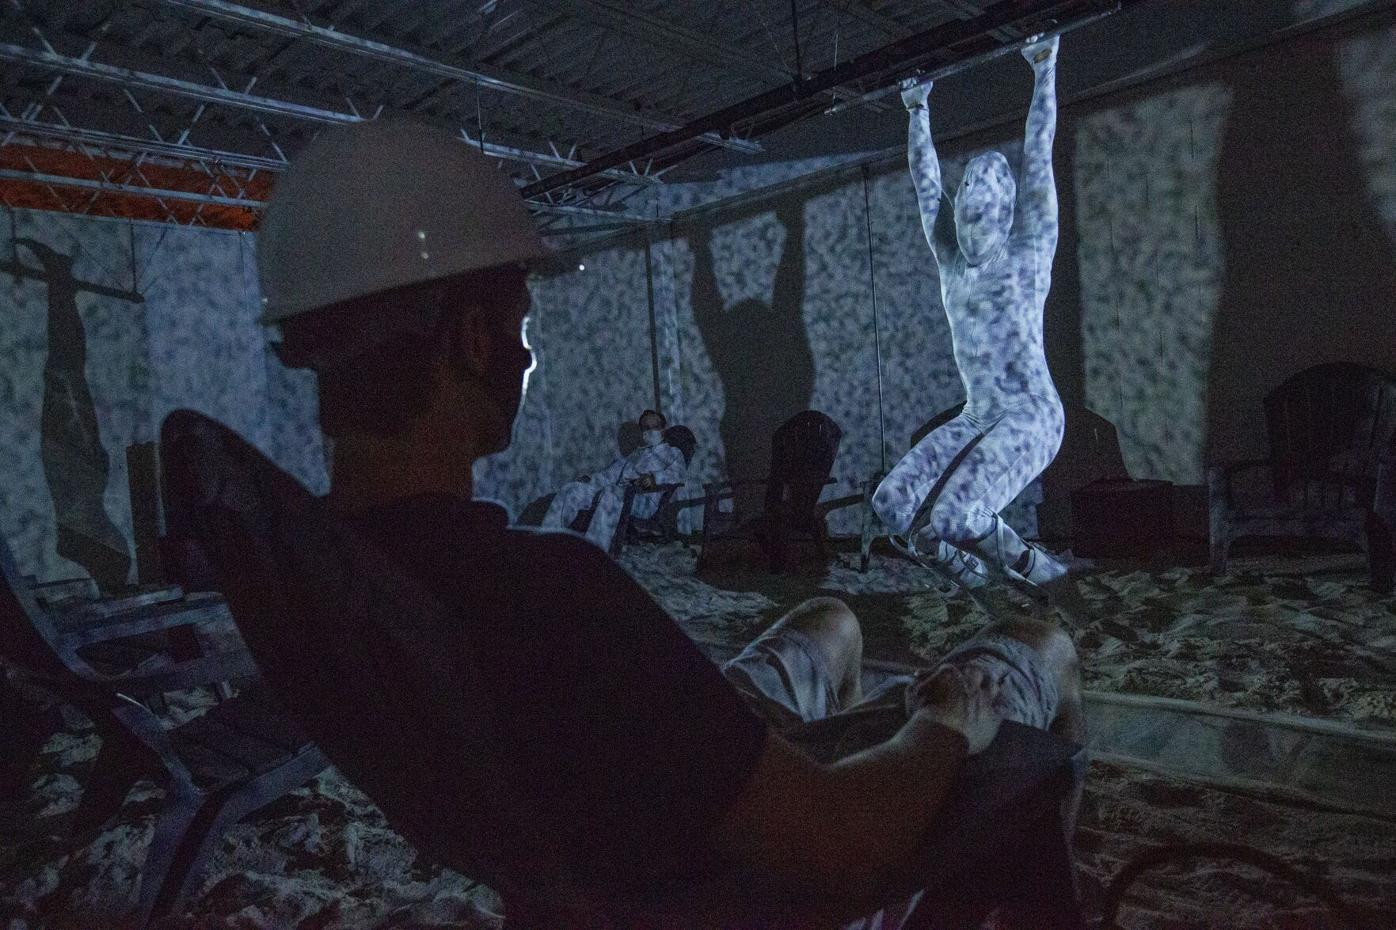 Choreographer turns pandemic lockdown into a live-action video game